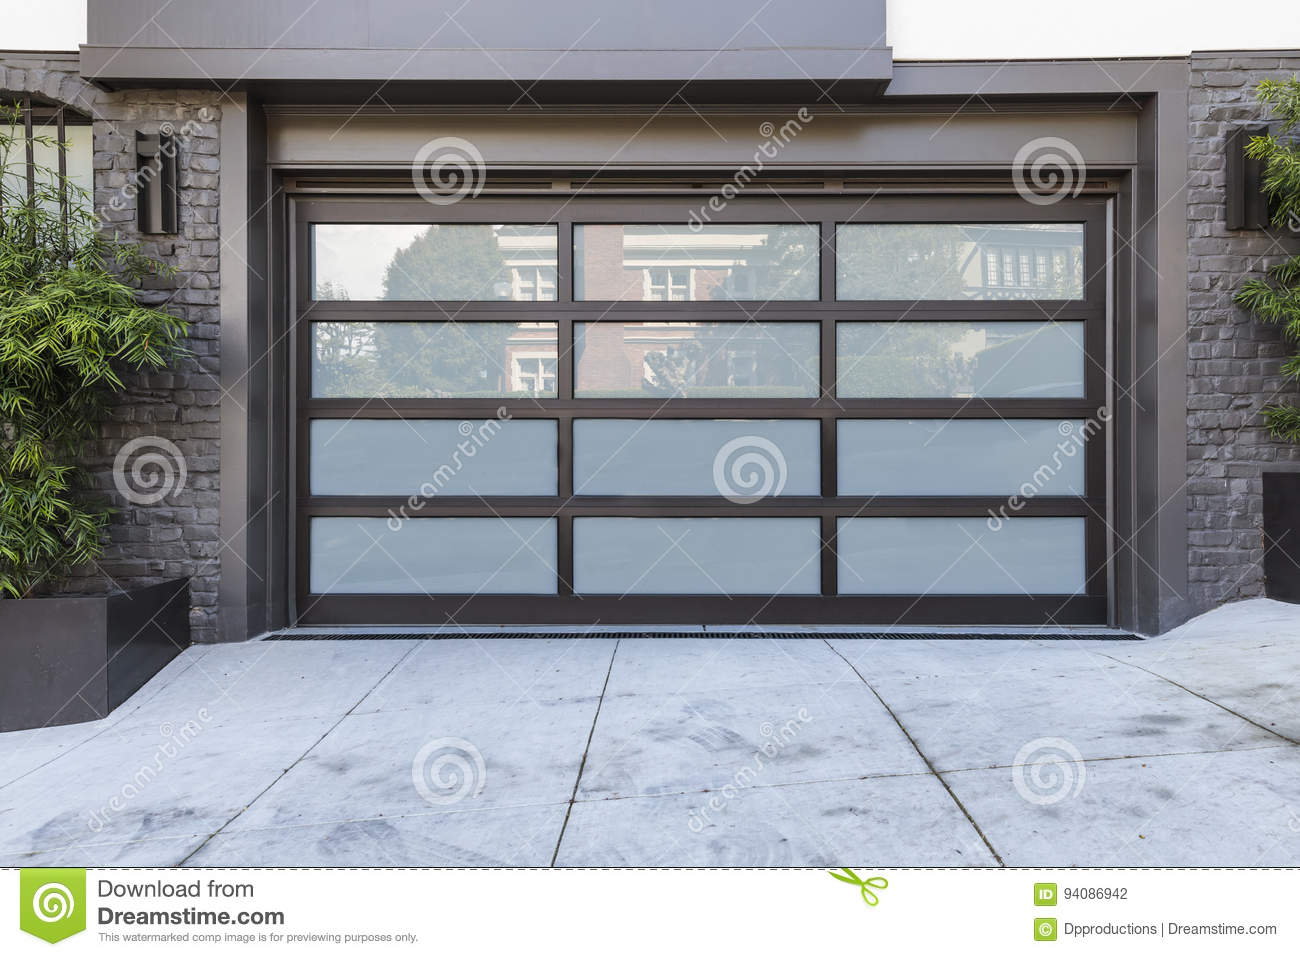 us dimensions standard size beautiful garage car handballtunisie of door